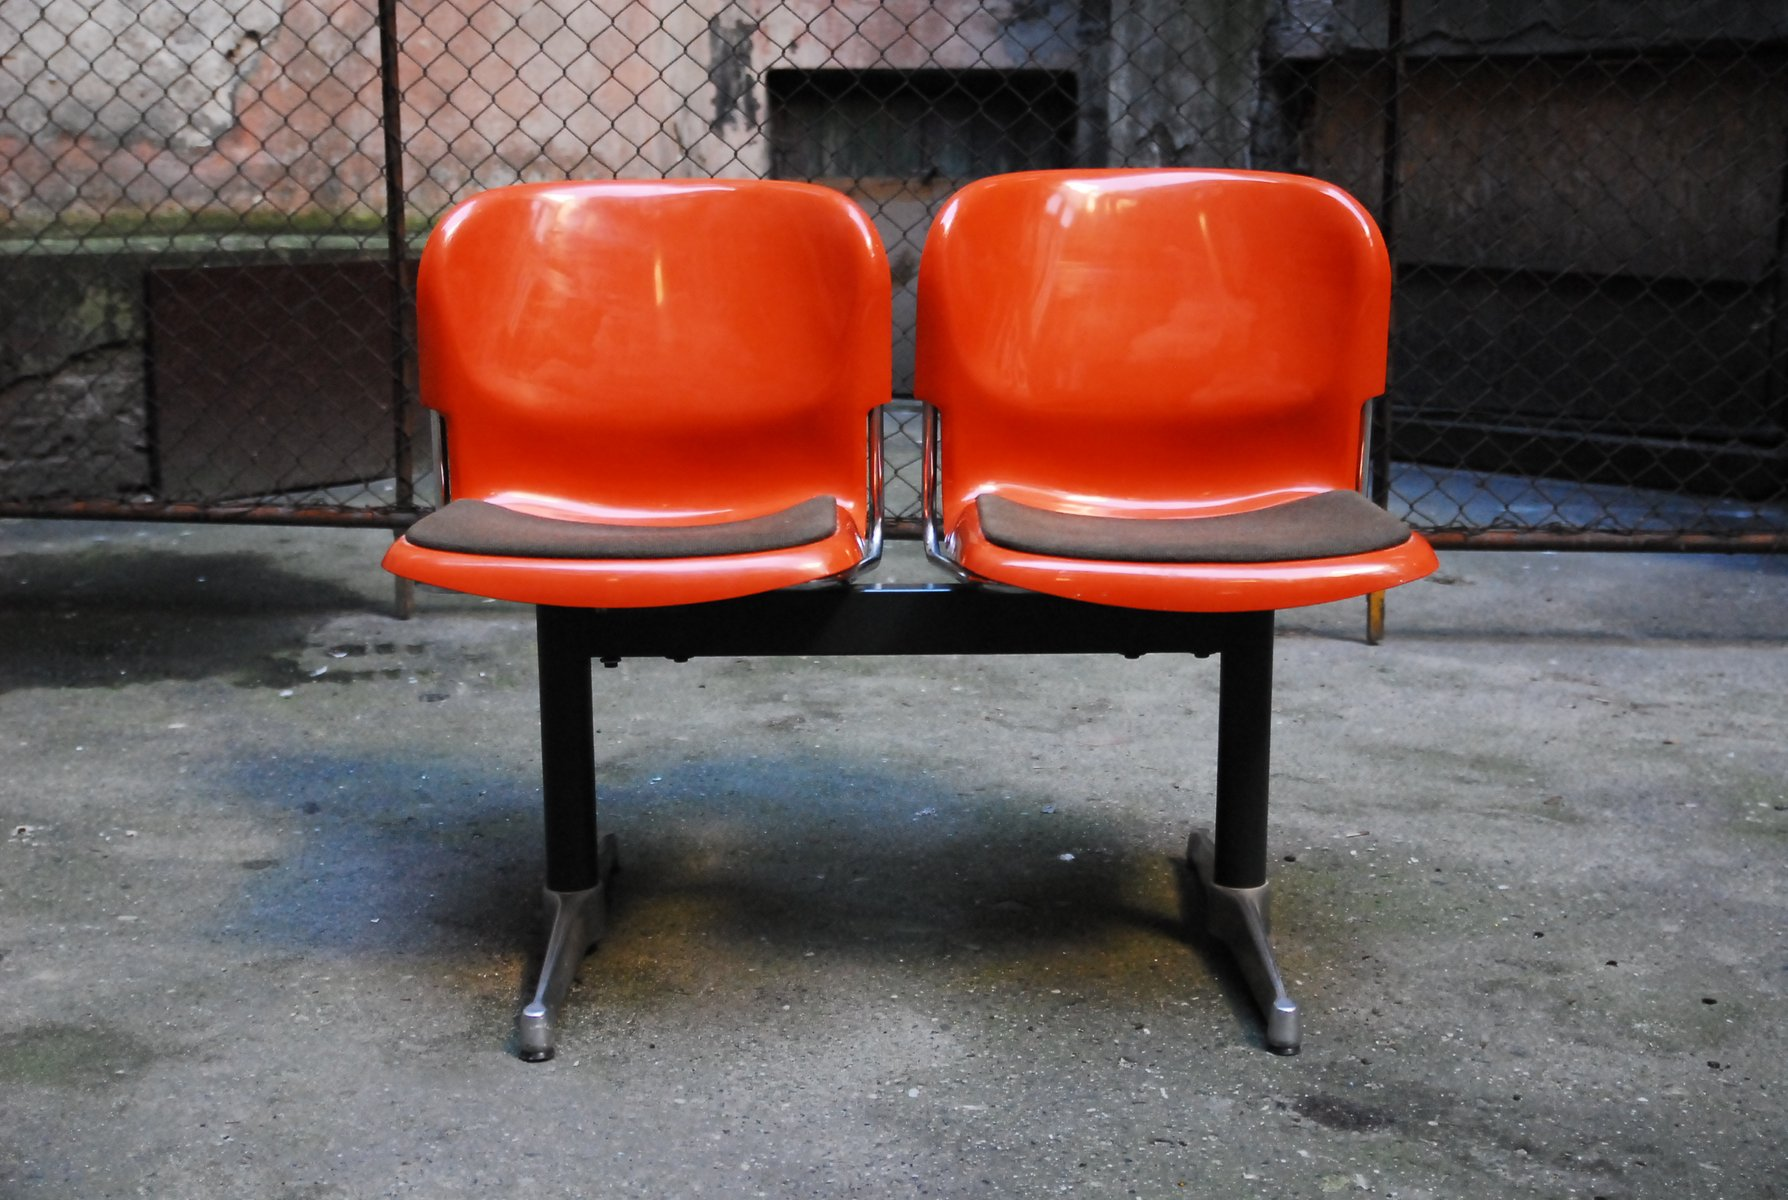 German Swing Double Chairs by Gerd Lange for Drabert 1960s for